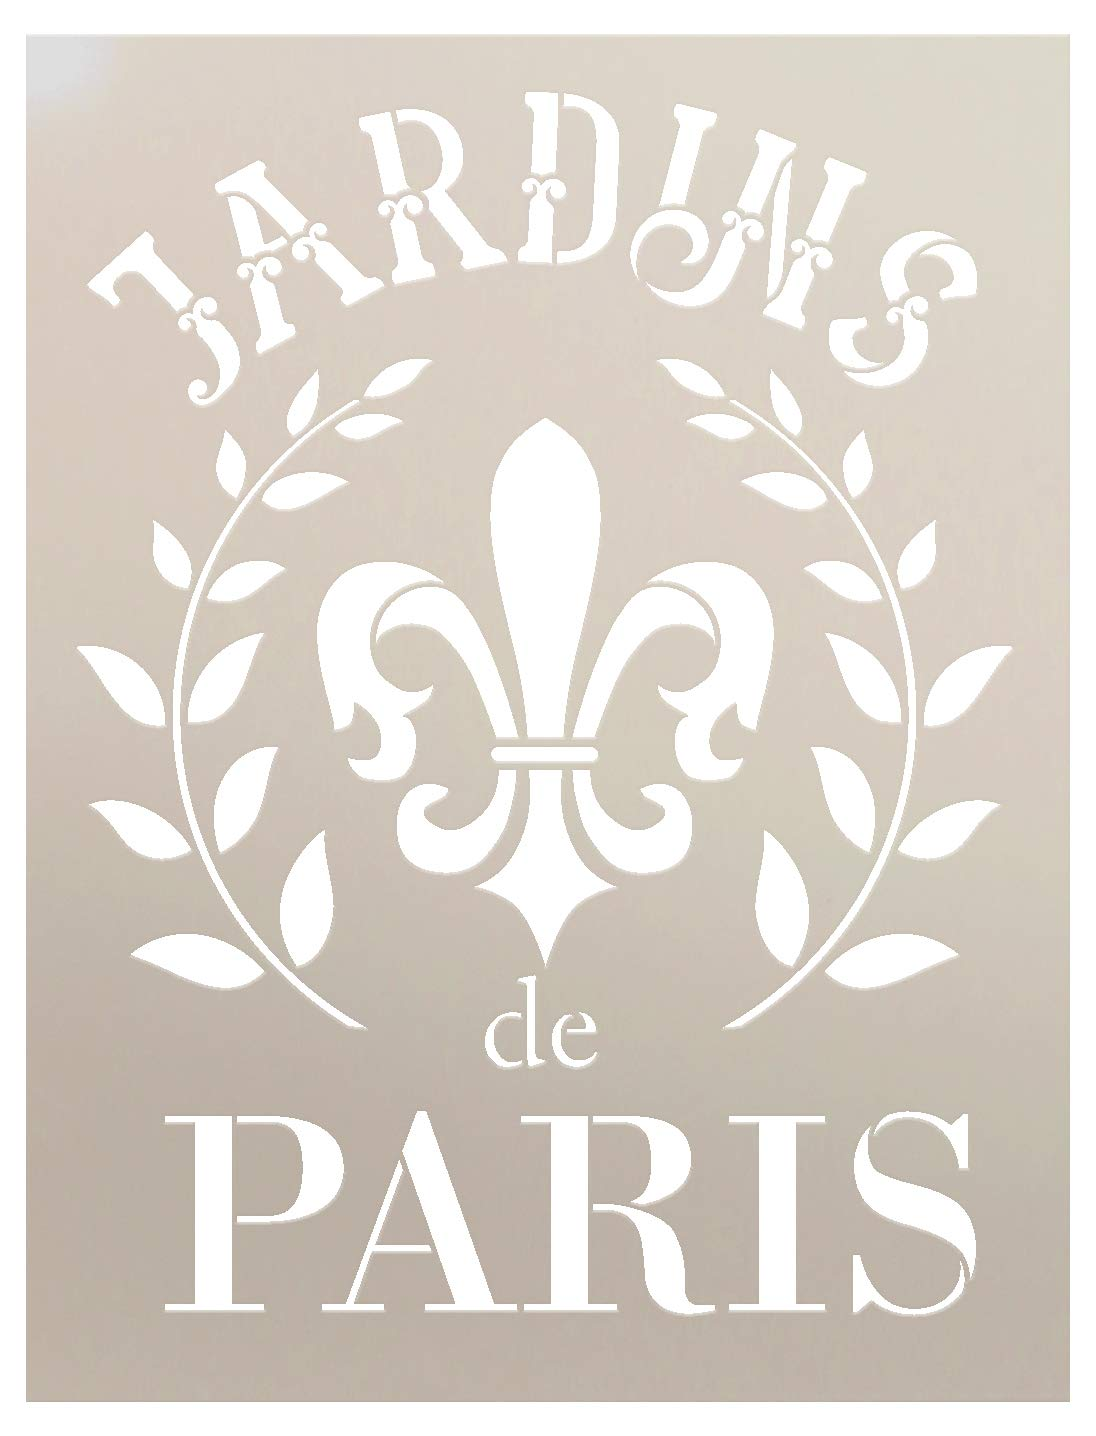 """Jardins De Paris Stencil by StudioR12   Wreath & Fleur French Word Art - Reusable Mylar Template   Painting, Chalk, Mixed Media   Use for Crafting, DIY Decor - STCL1415 (8.5"""" x 11"""")"""